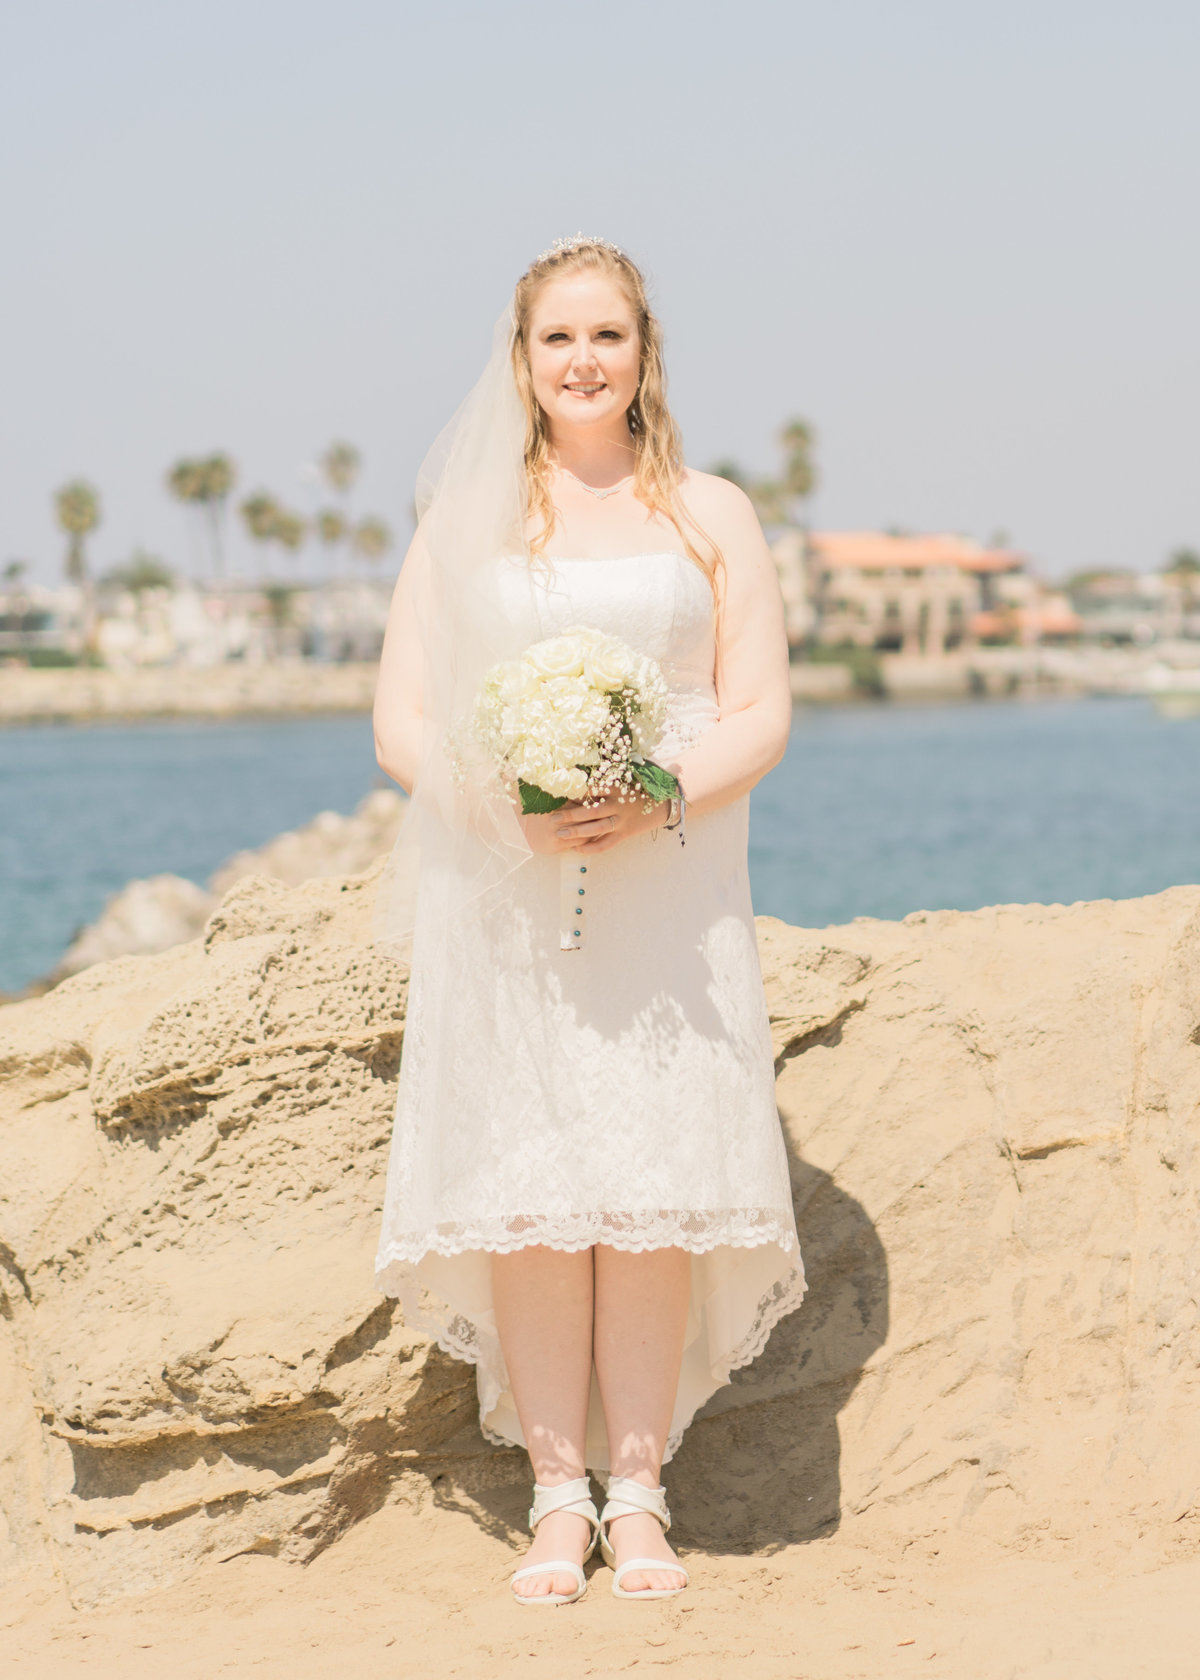 JamieBrownPhotographyBeachElopement-8_mini